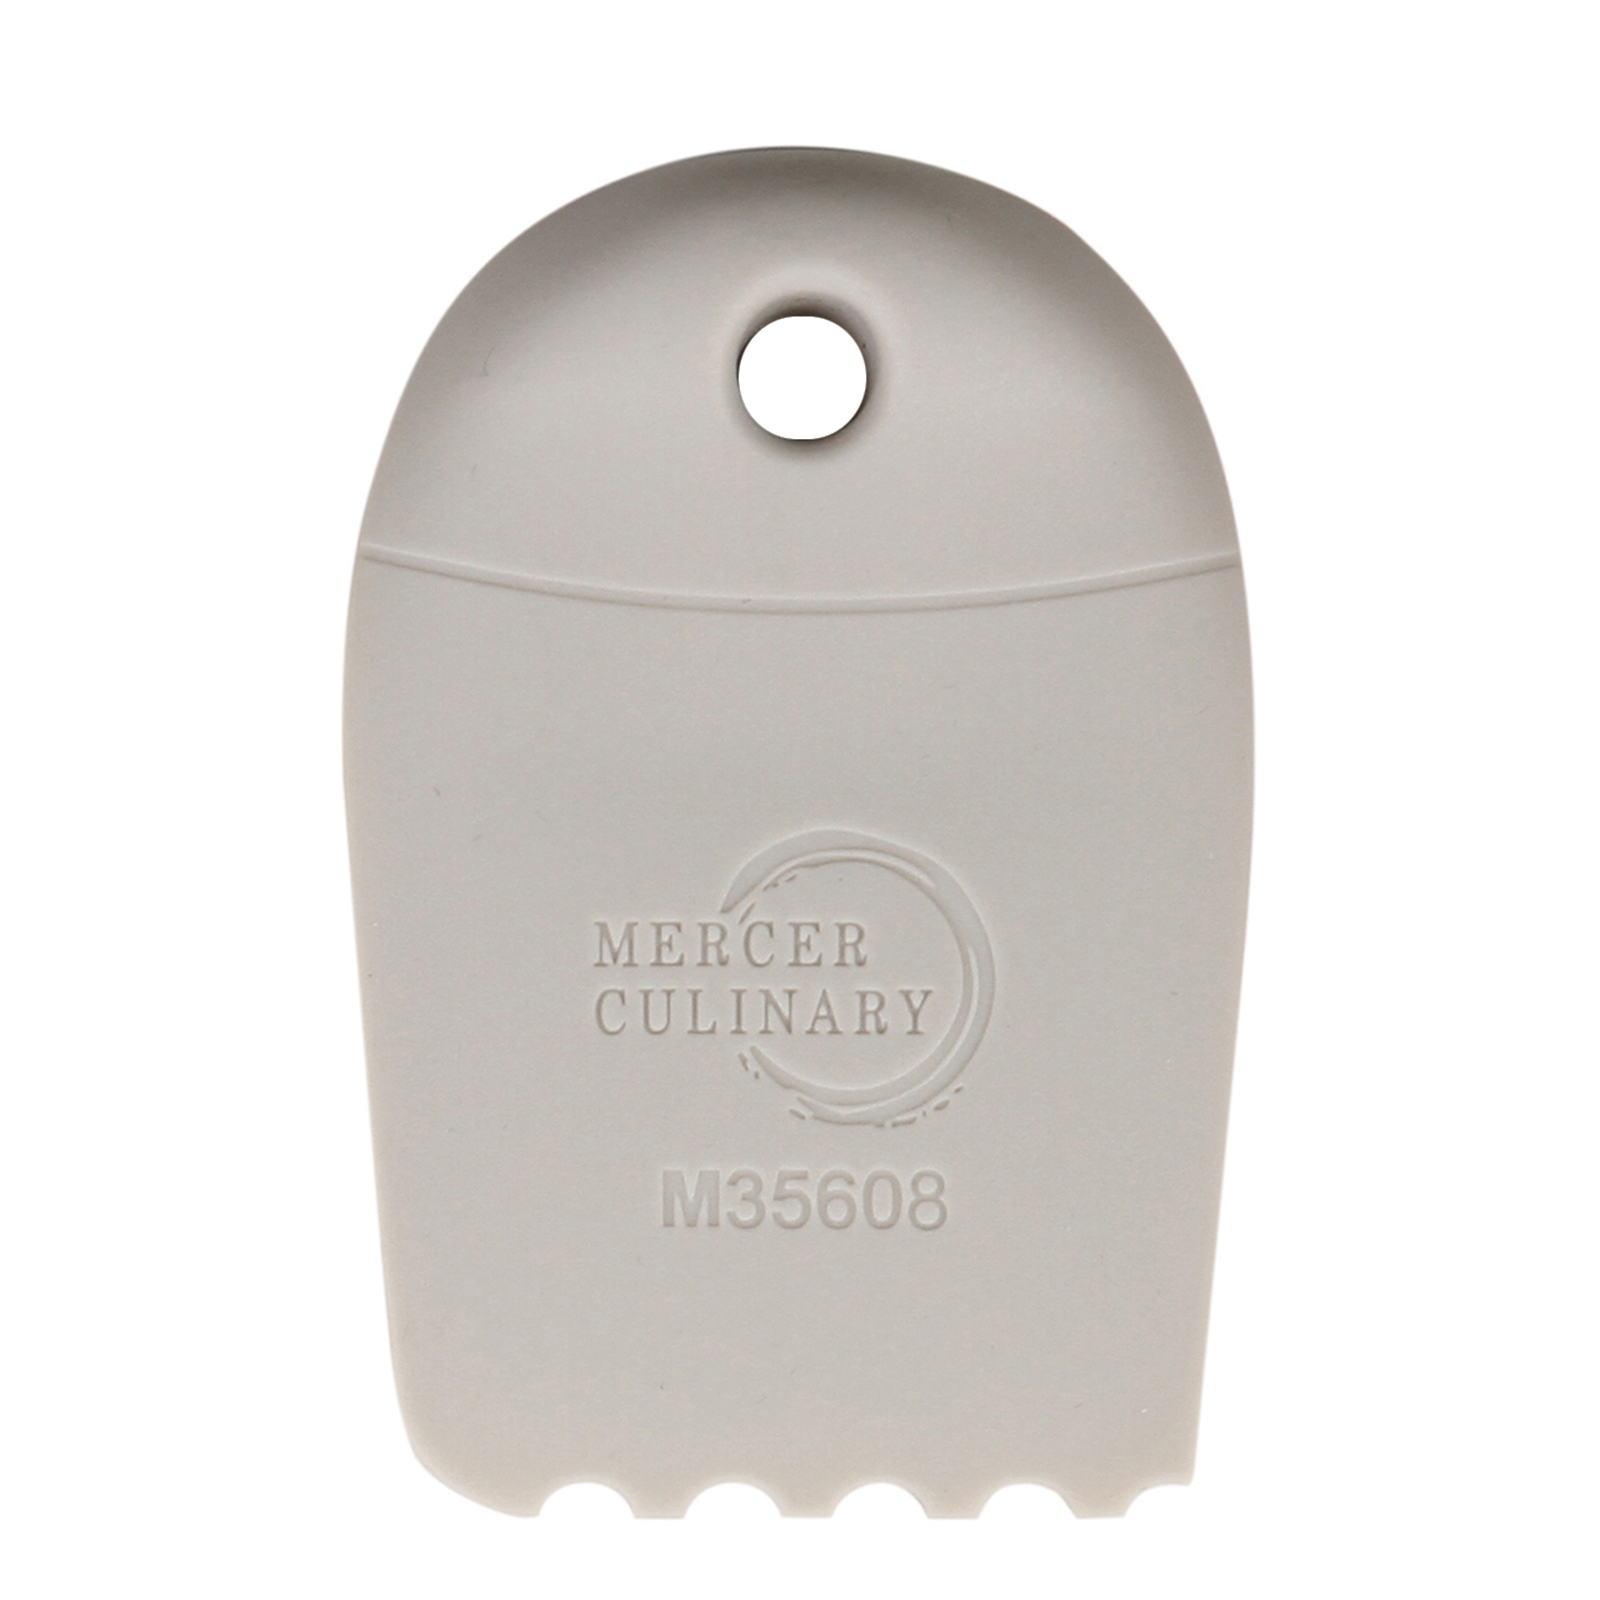 Mercer Culinary M35608 plating tool